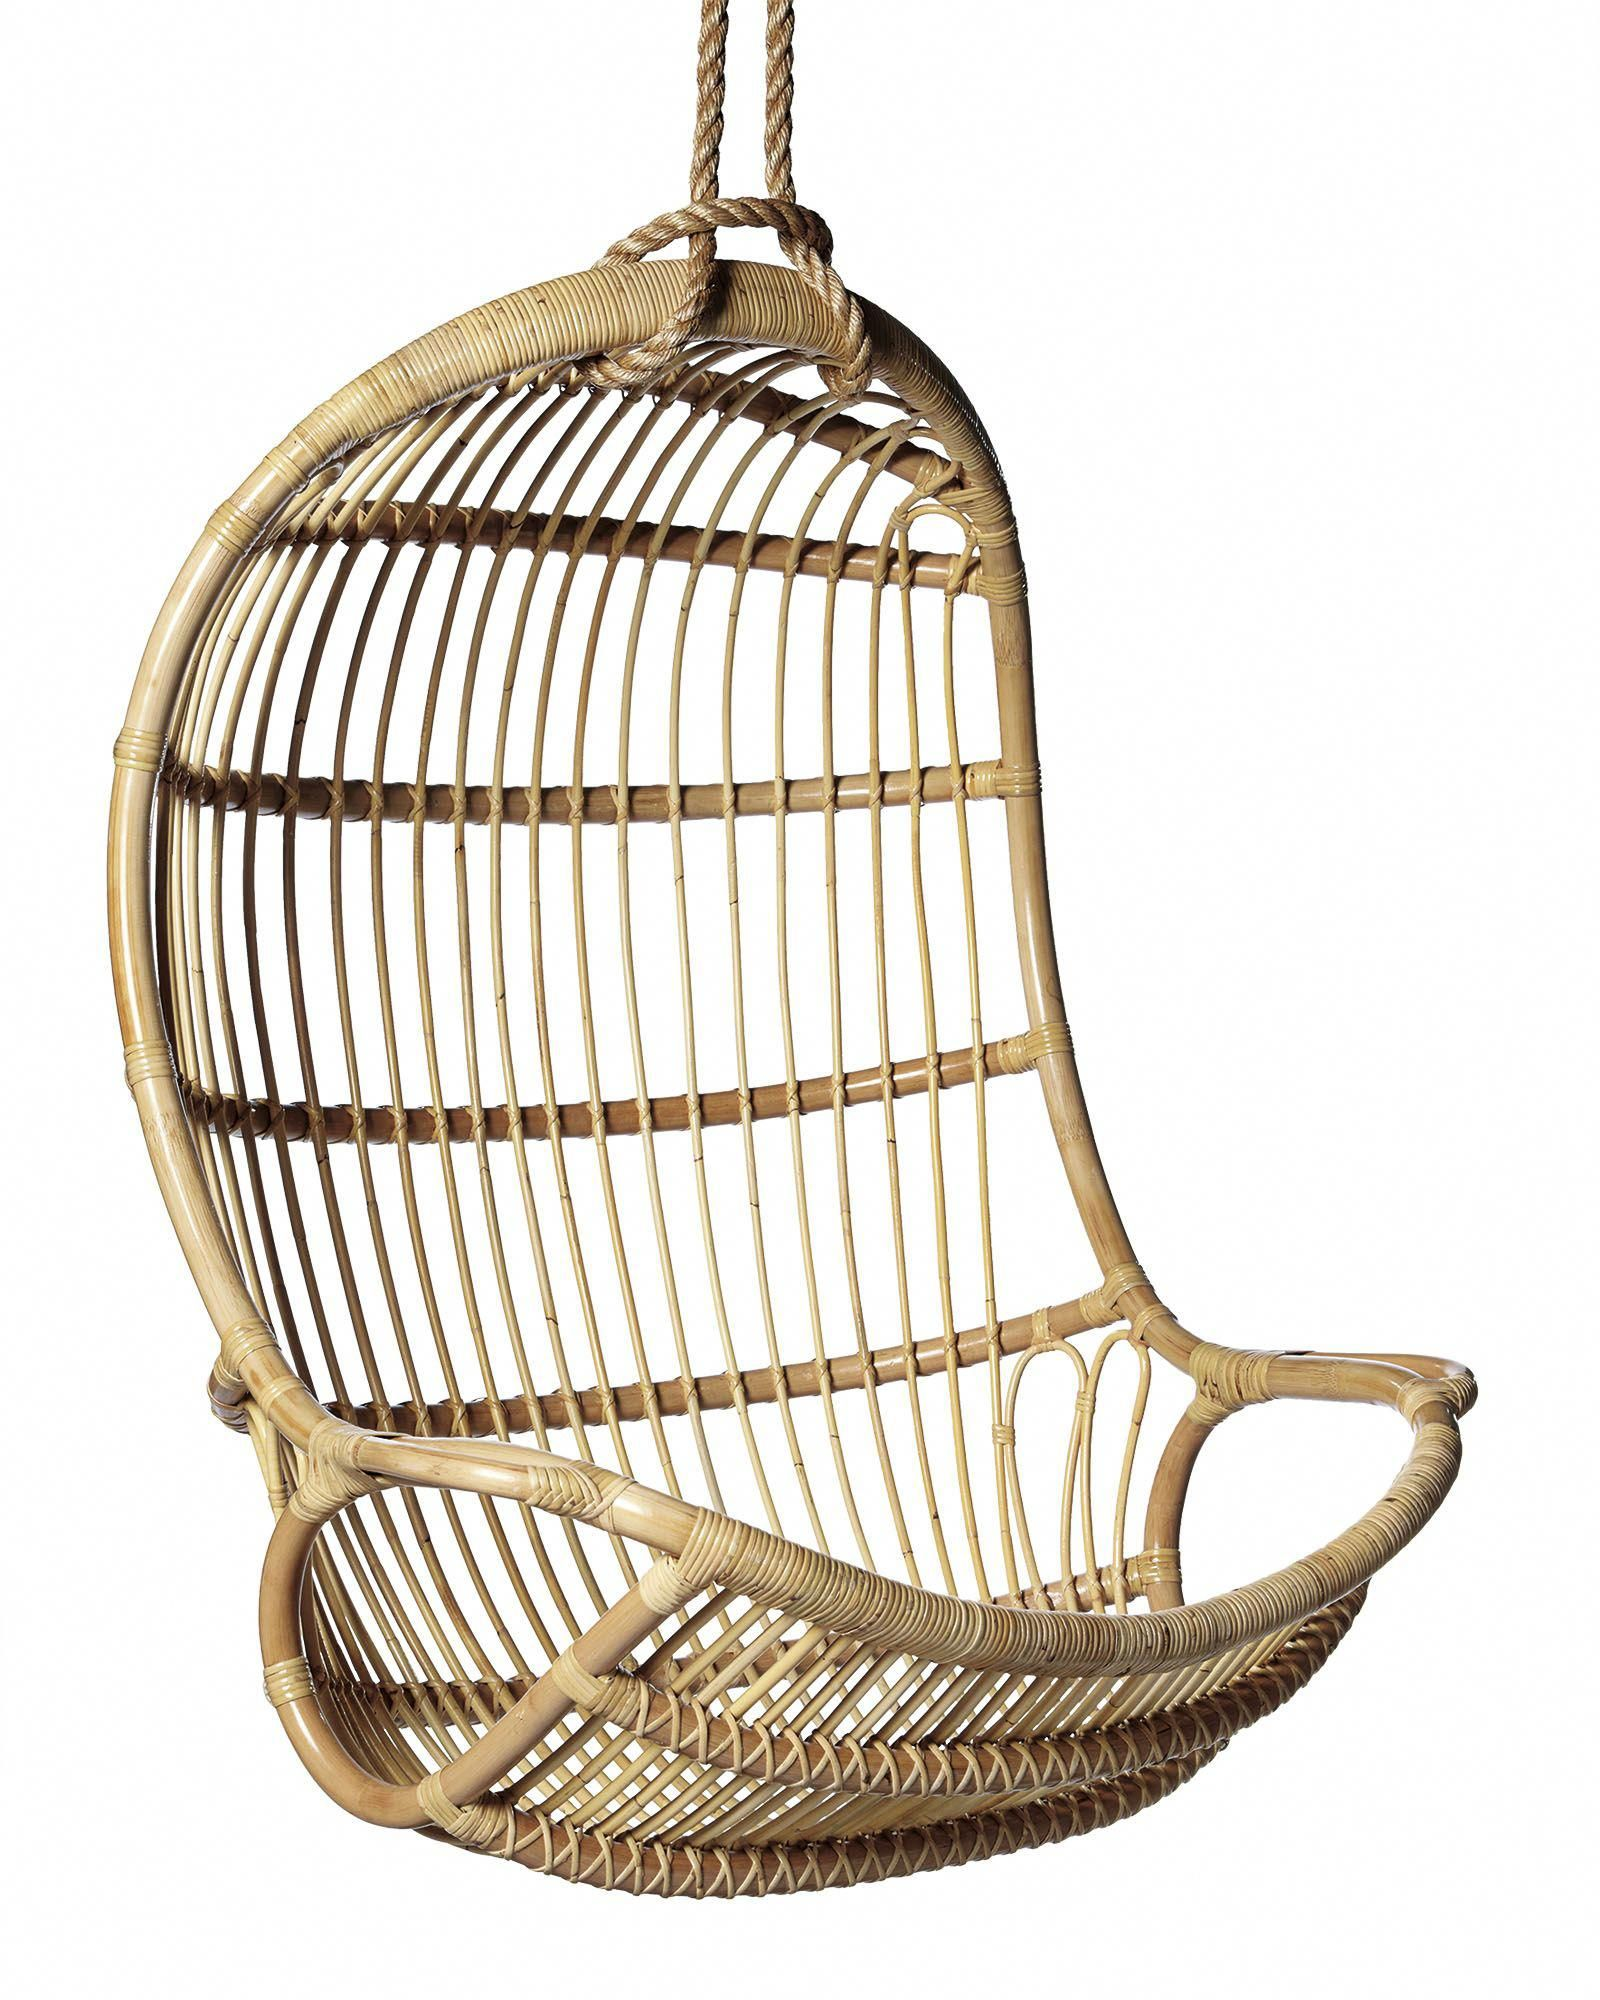 Rattanmöbel 24 Hanging Rattan Chair In 2019 Chairs Swinging Chair